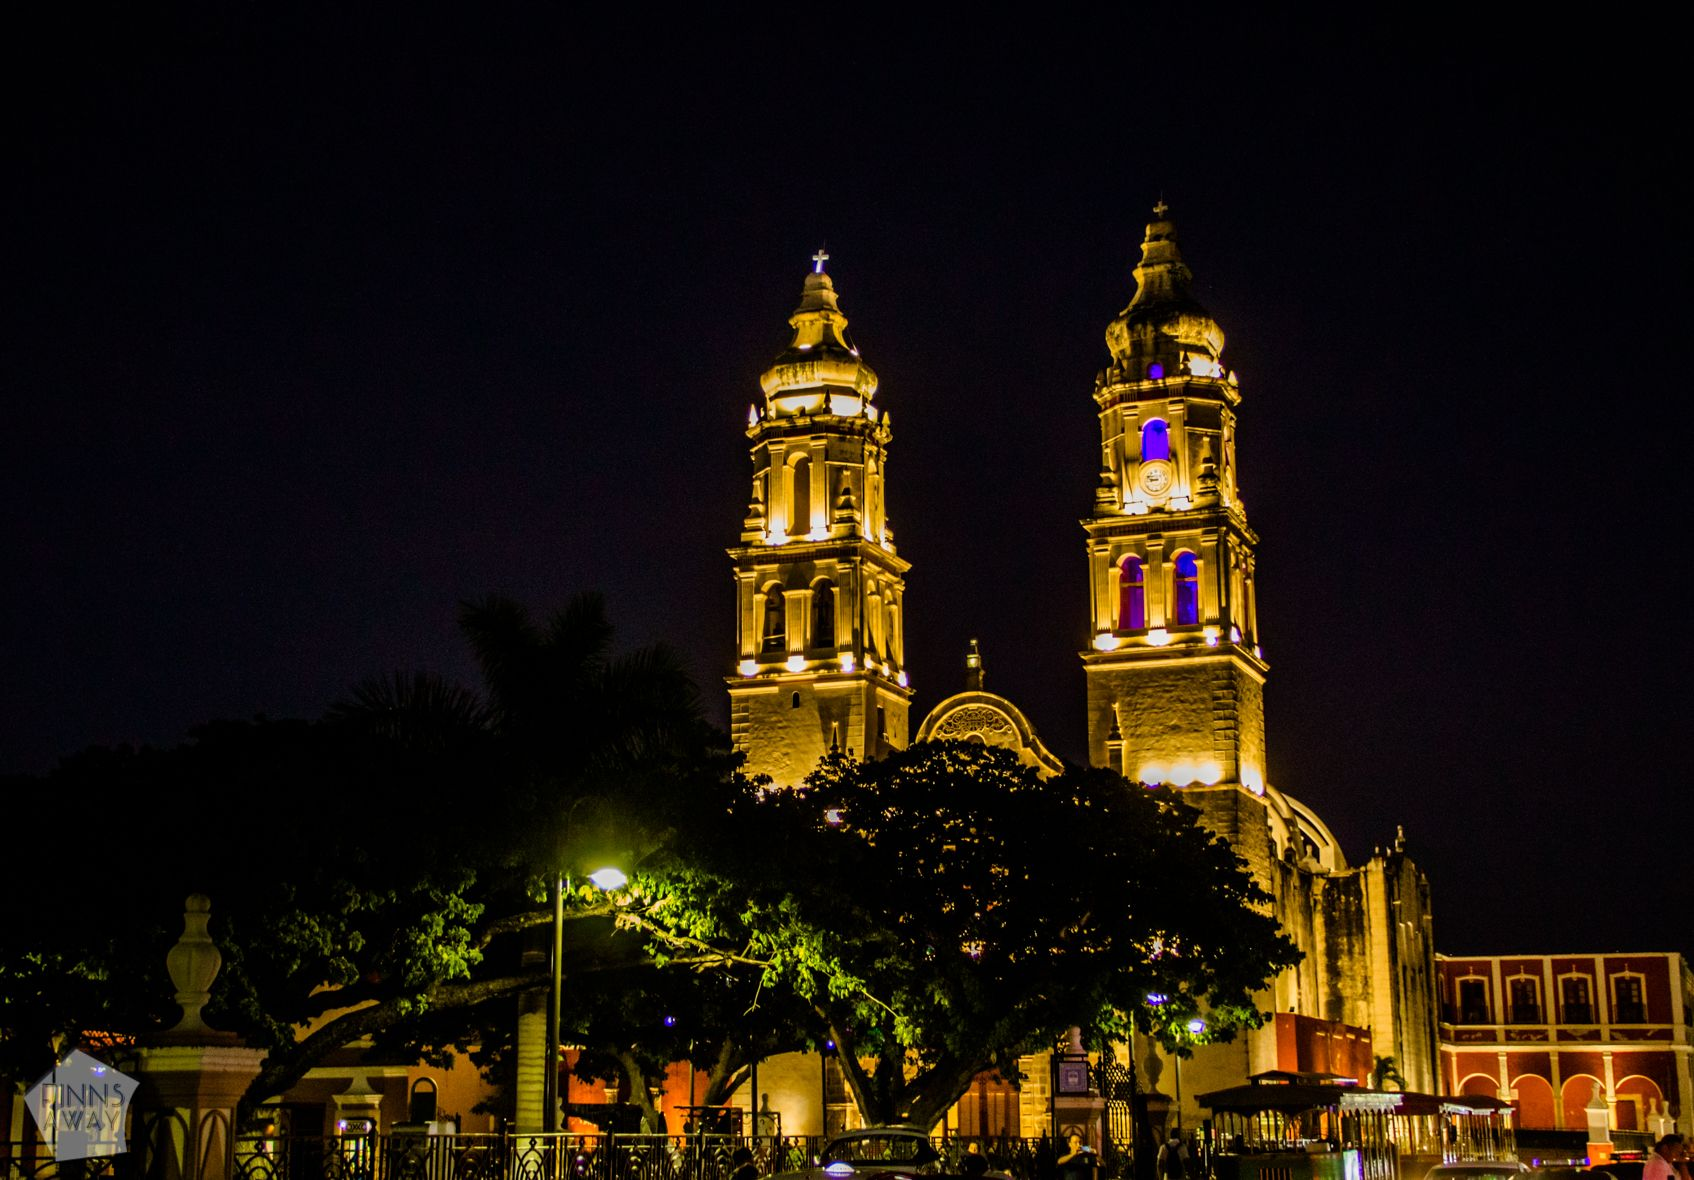 Campeche Cathedral | Campeche in Yucatan Peninsula, Mexico, is famous for a walled historical center with colonial architecture | FinnsAway Travel Blog